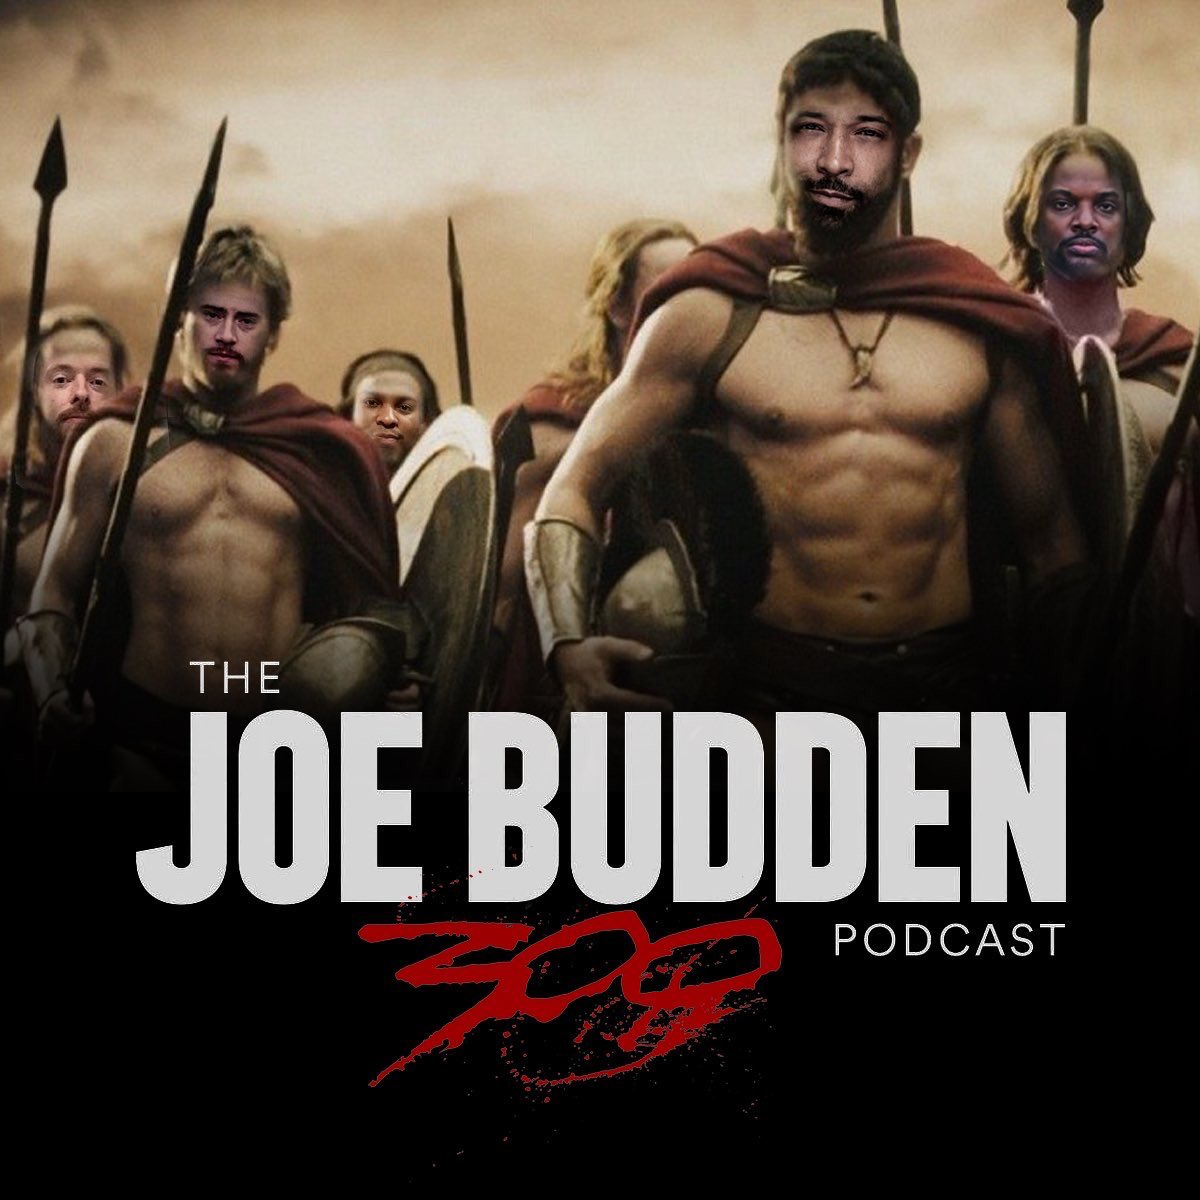 "The @JoeBudden Podcast Episode 300 ""The London"" is available now! Stream exclusively on @Spotify LISTEN HERE 🎧: spoti.fi/2qGnzoR"